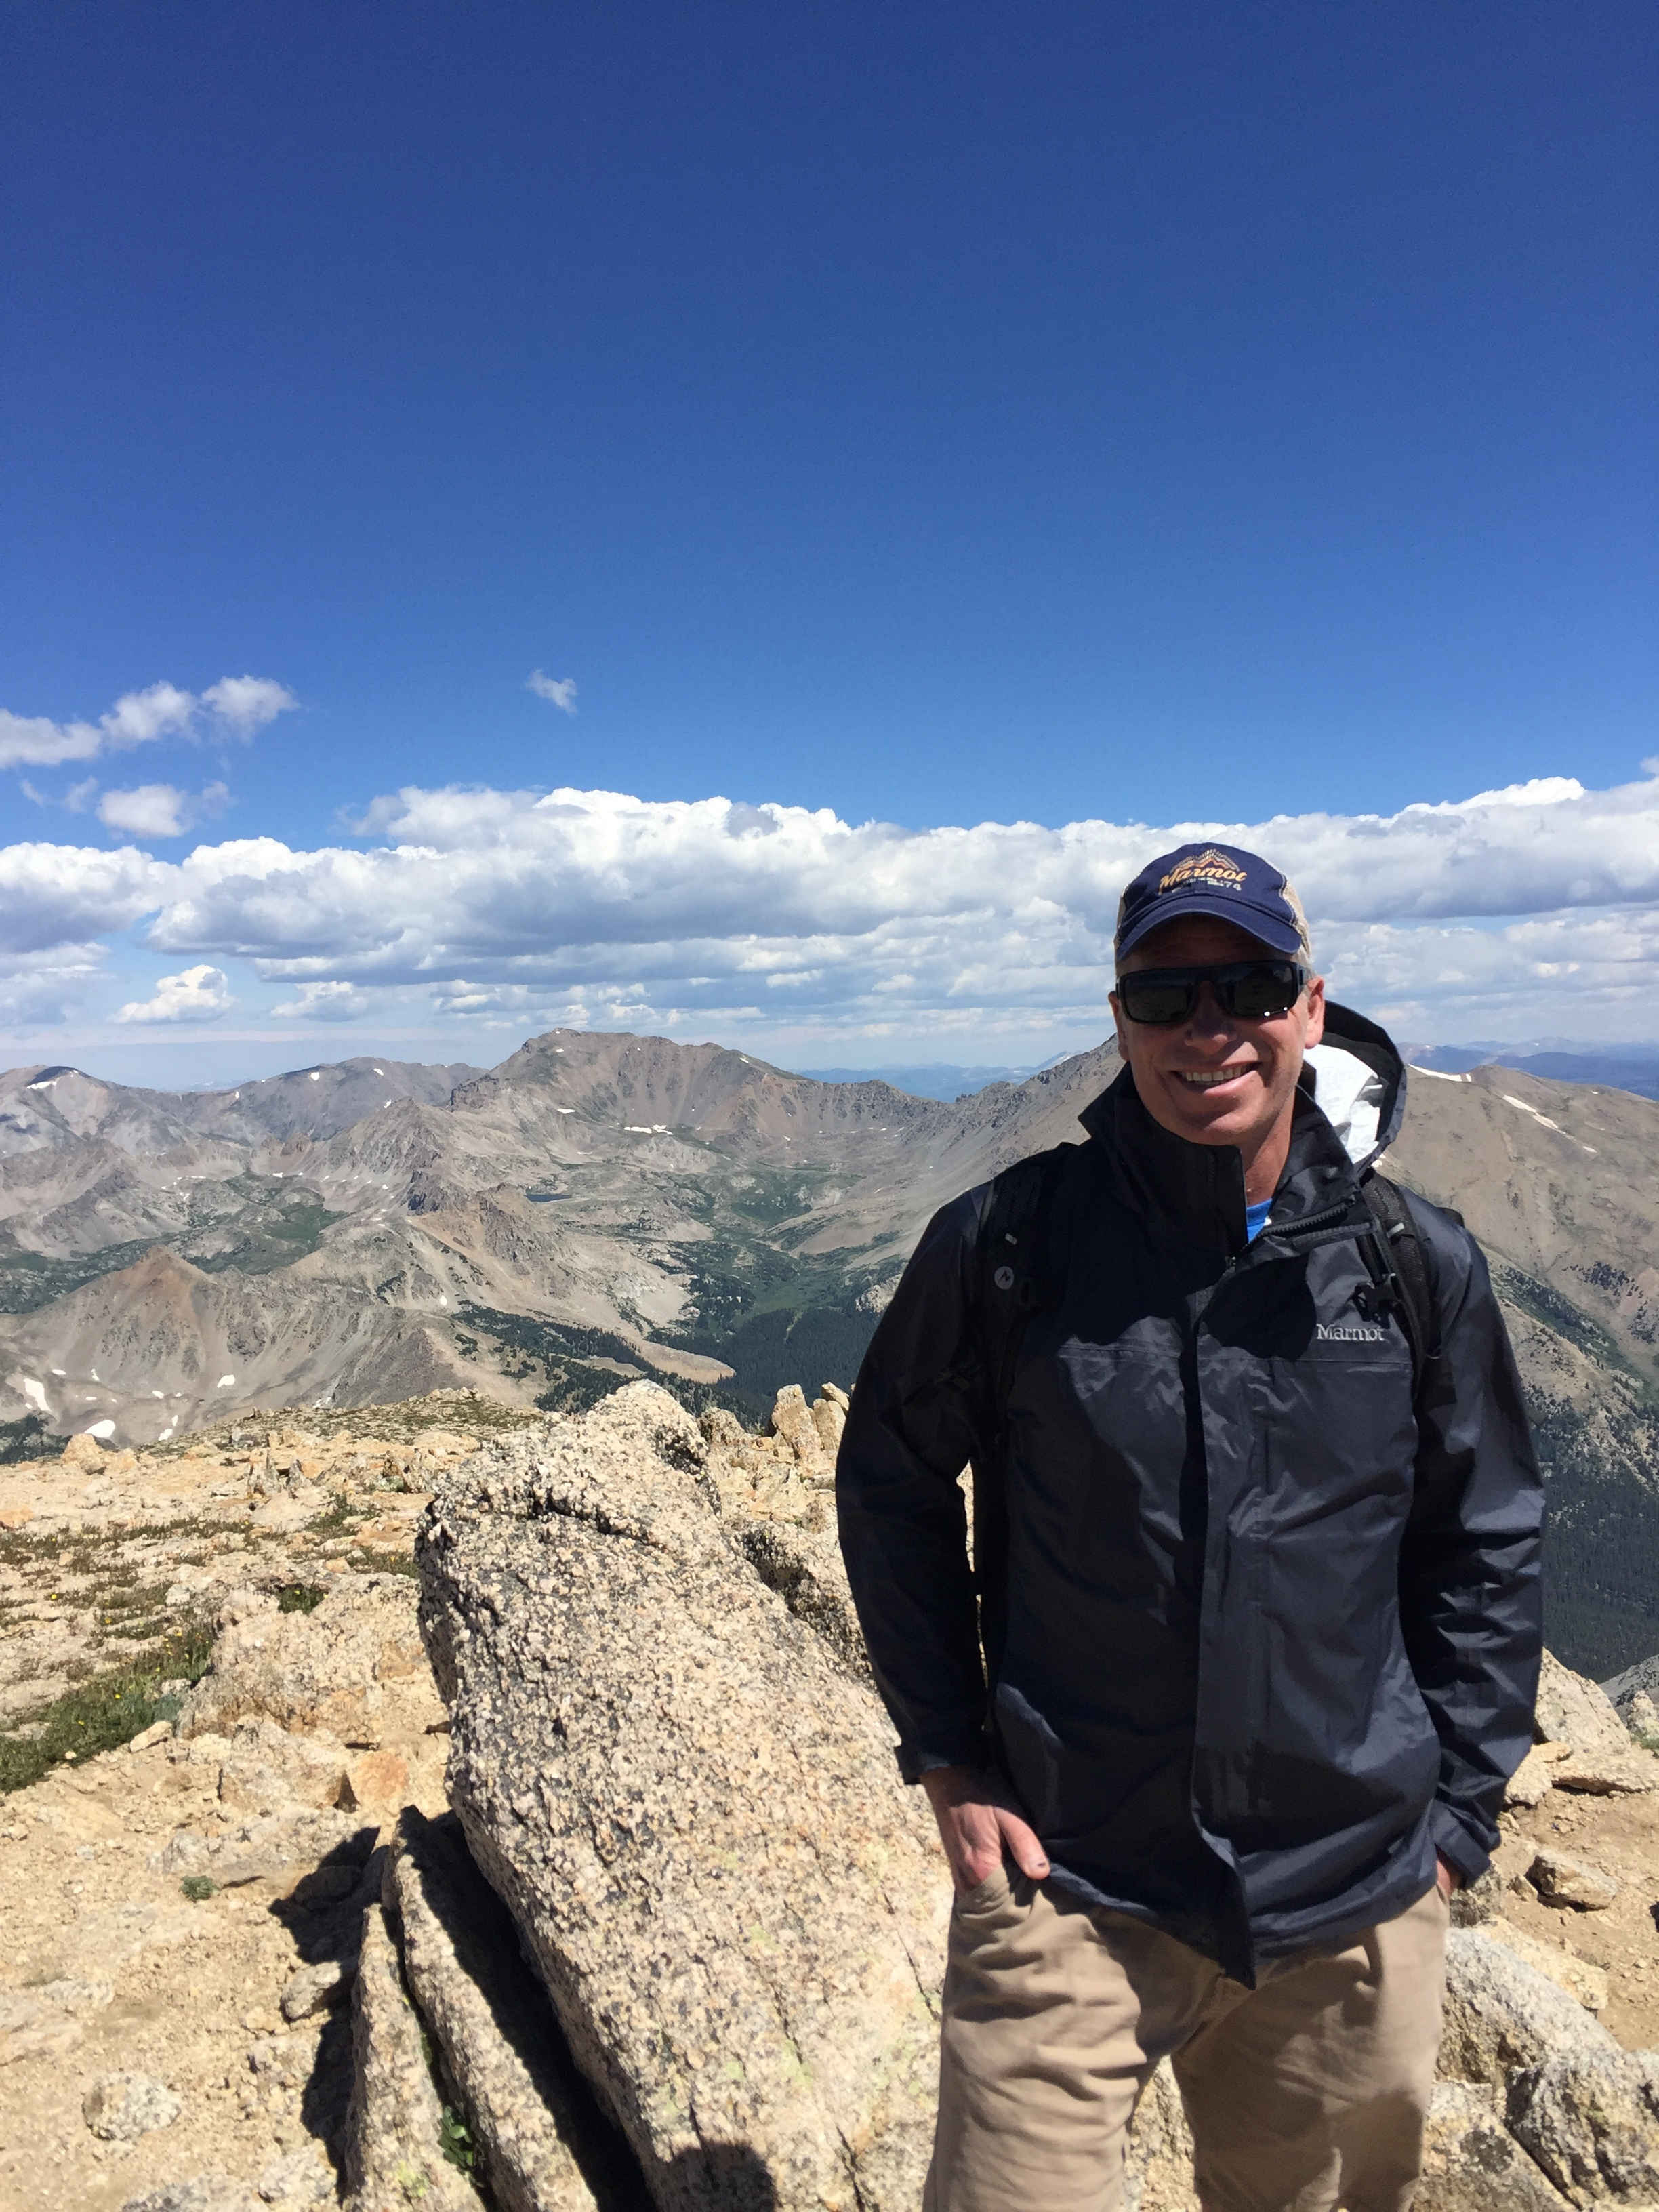 Mt Yale, Colorado 14,196' August 17,  2019